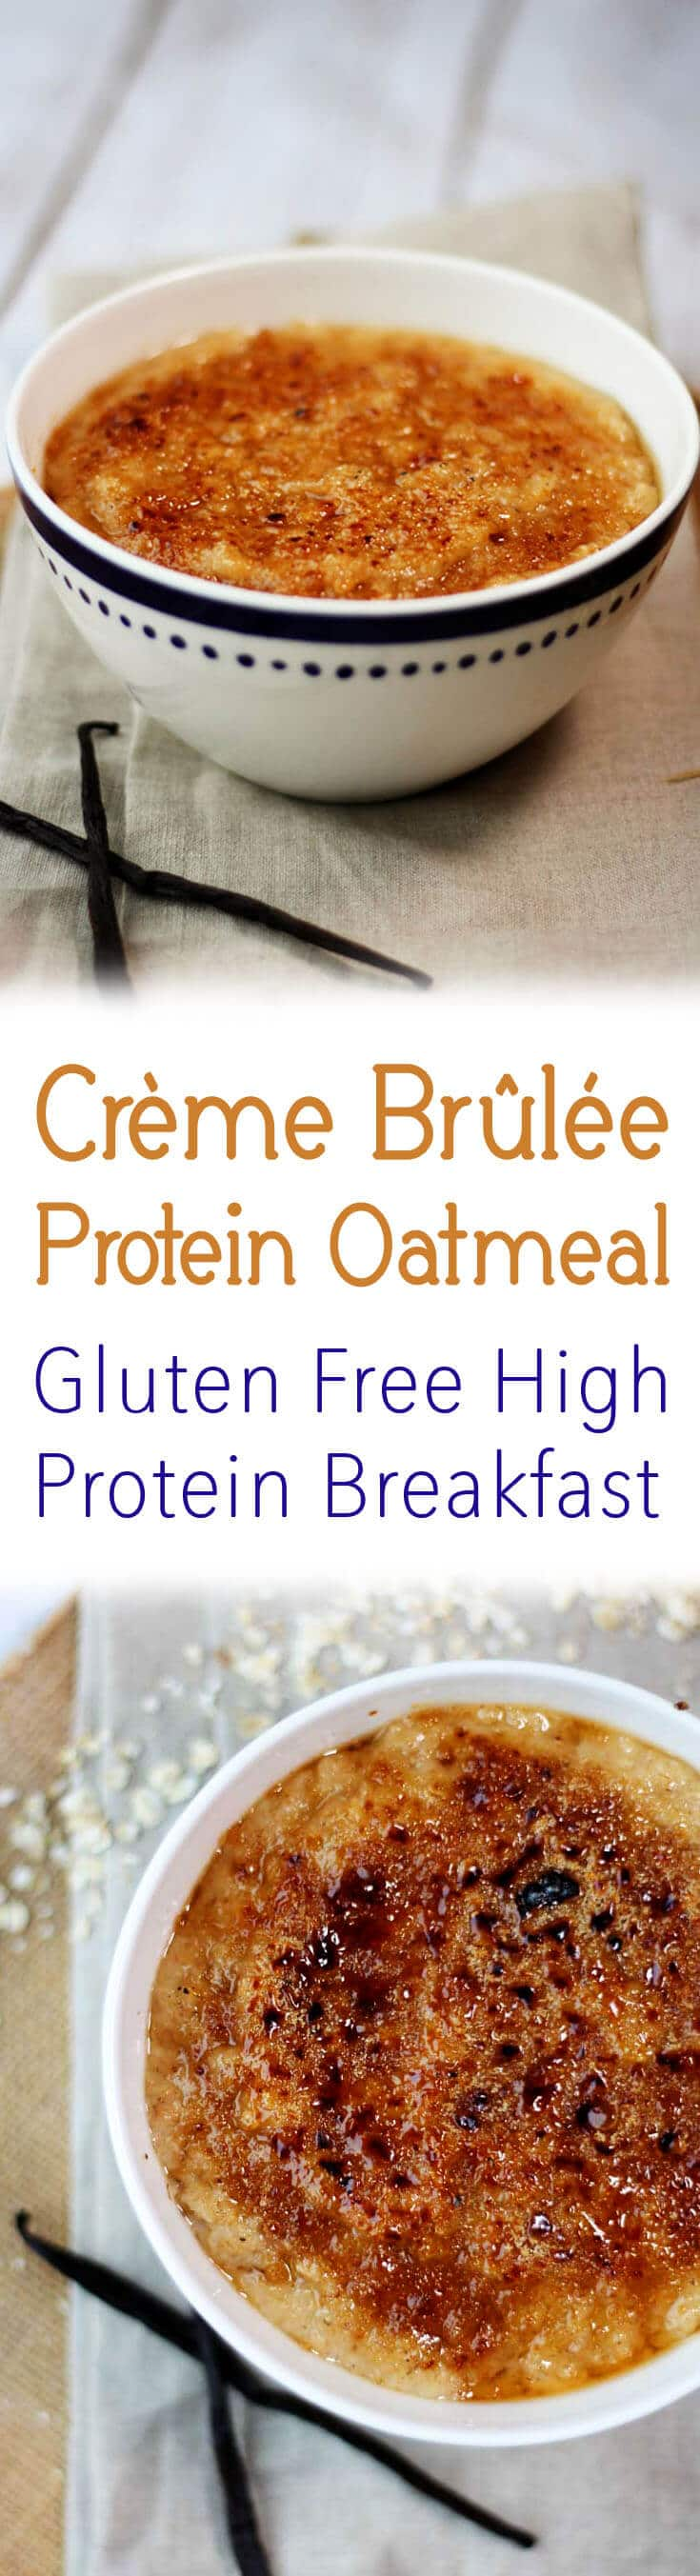 This Crème Brûlée Protein Oatmeal is a gluten free morning-friendly version of the decadent dessert but with a ton of protein from whipped egg whites.